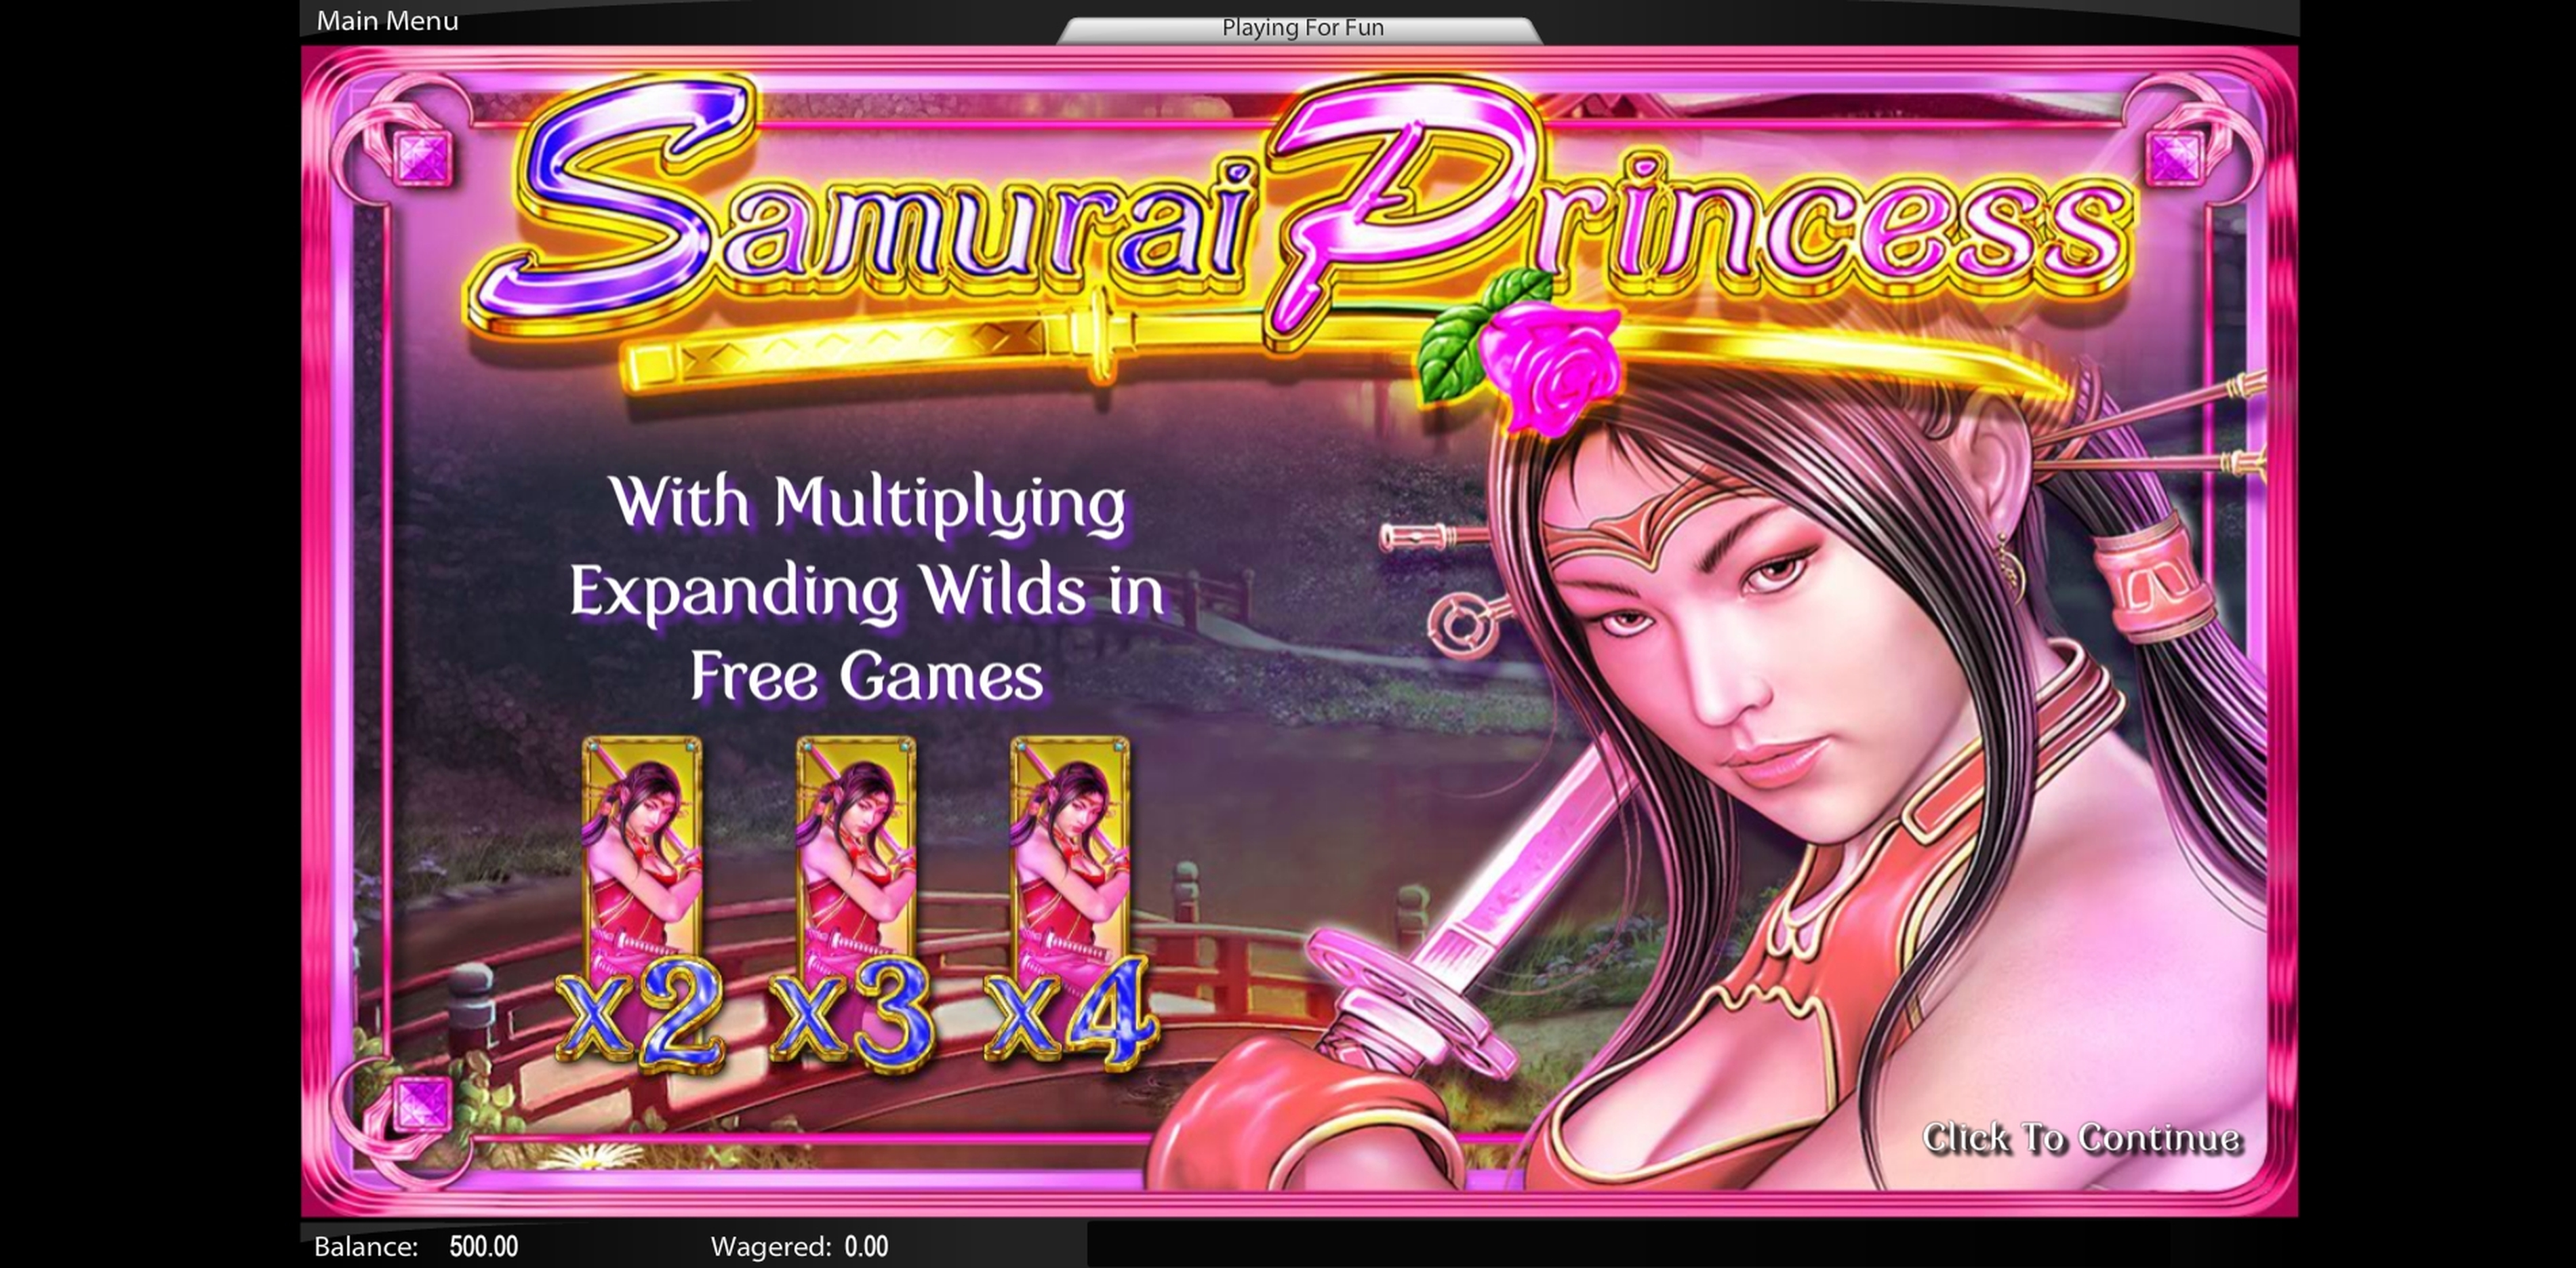 Play Samurai Princess Free Casino Slot Game by Lightning Box